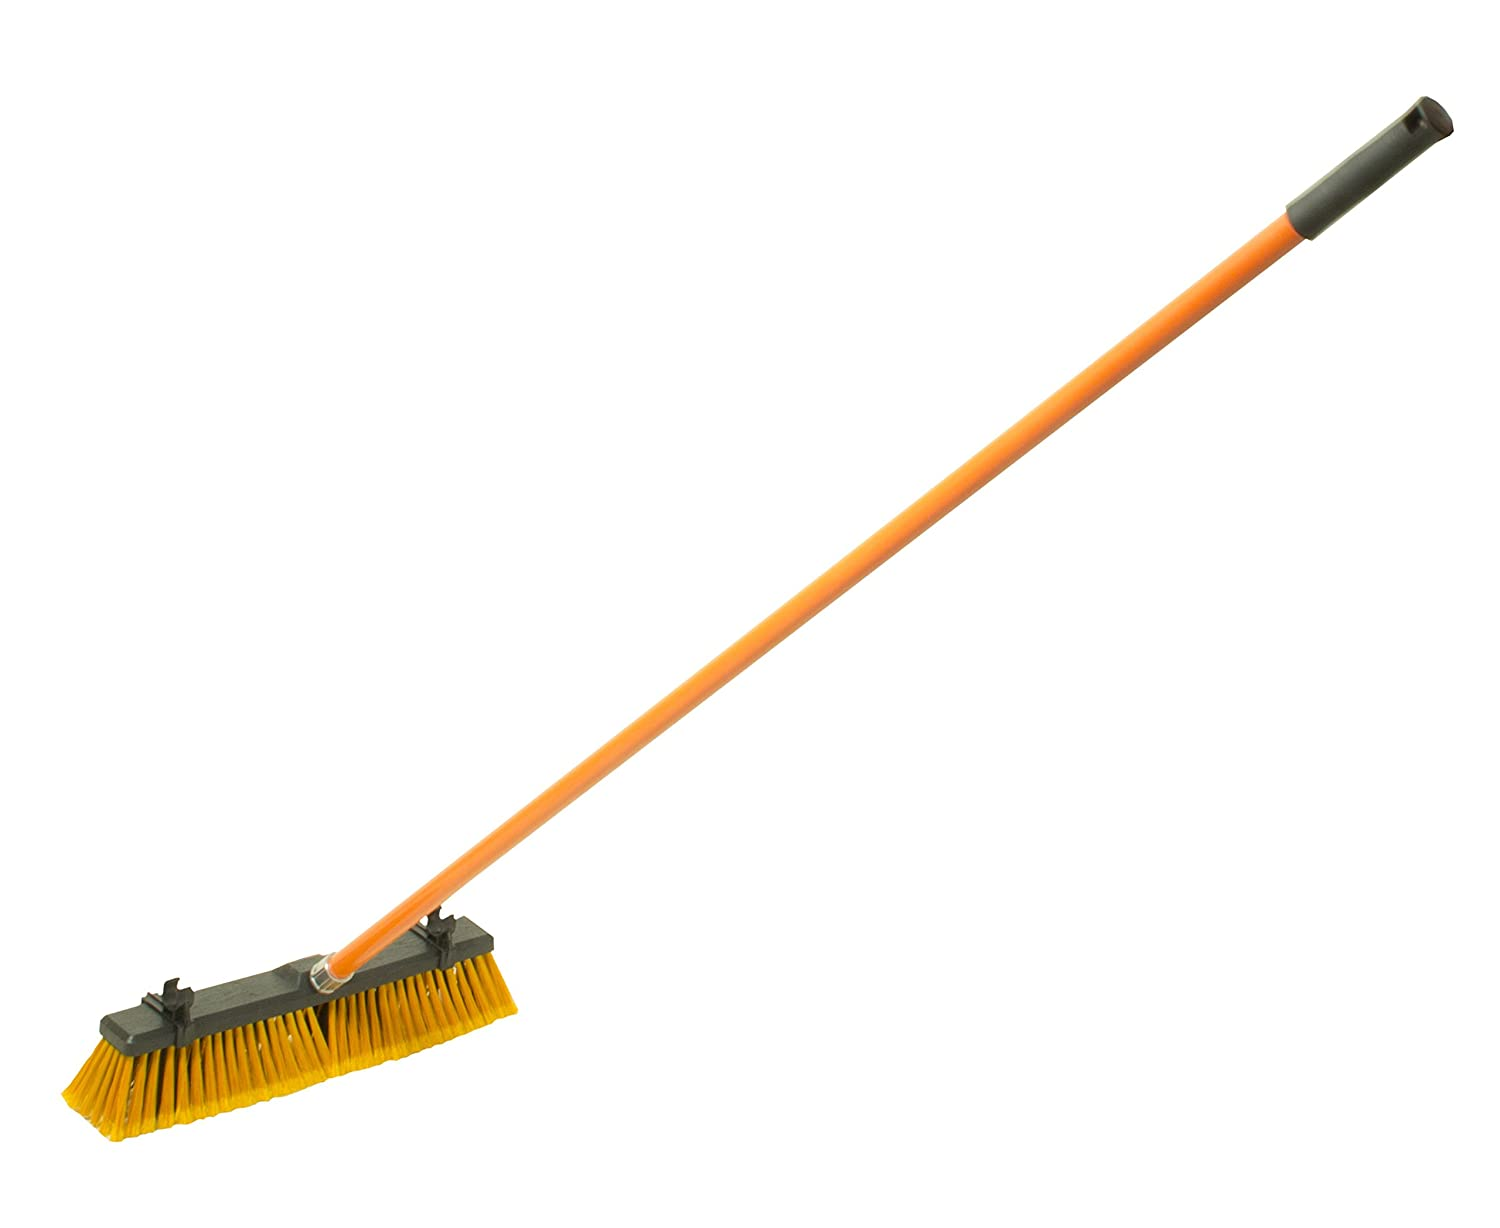 Detailer's Choice 6018 Heavy-Duty Push Broom Detailer's Choice